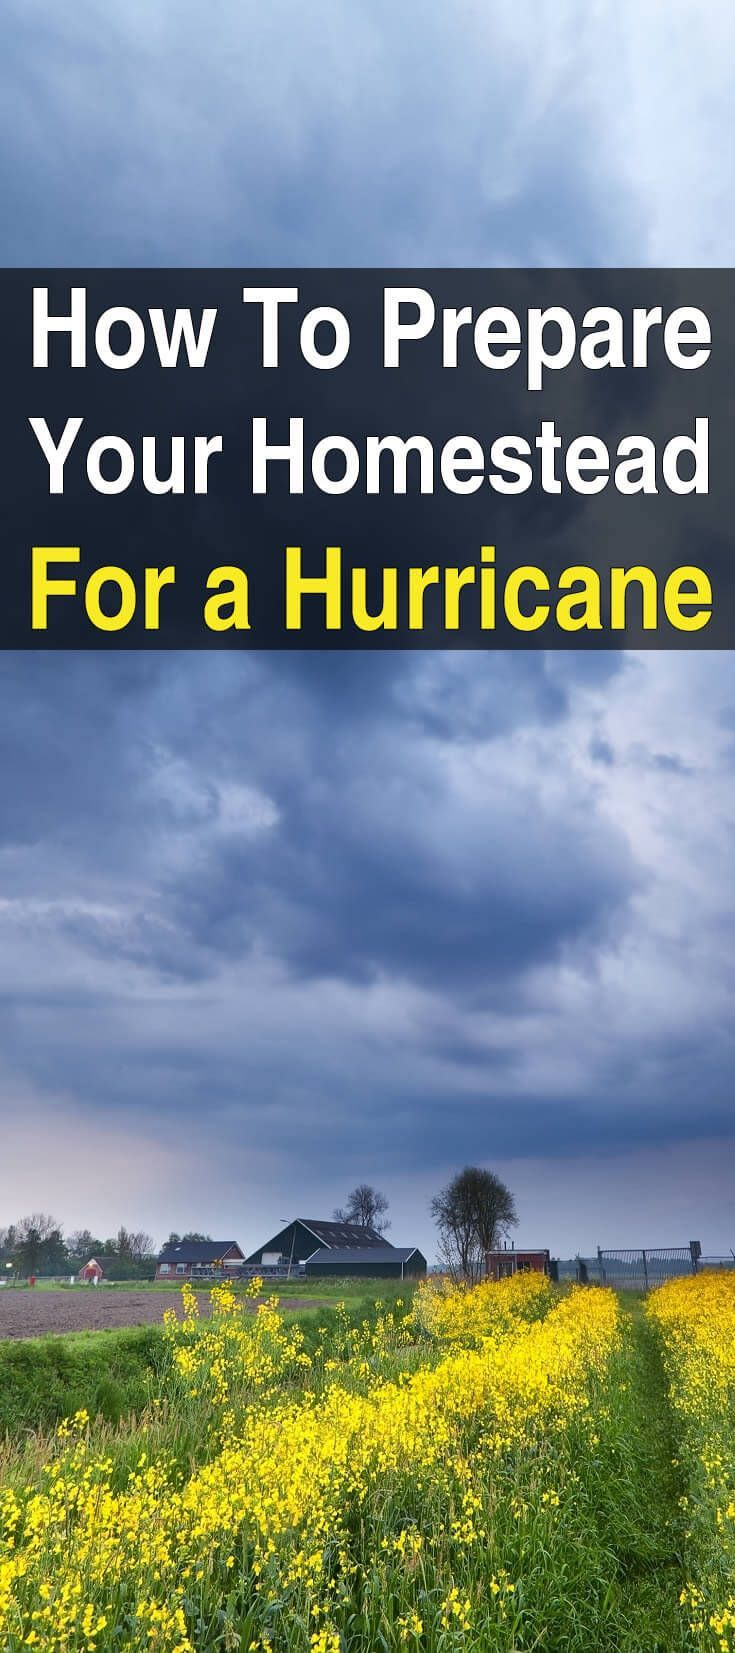 How To Prepare Your Homestead For A Hurricane With Images Homestead Survival Hurricane Preparation Homesteading